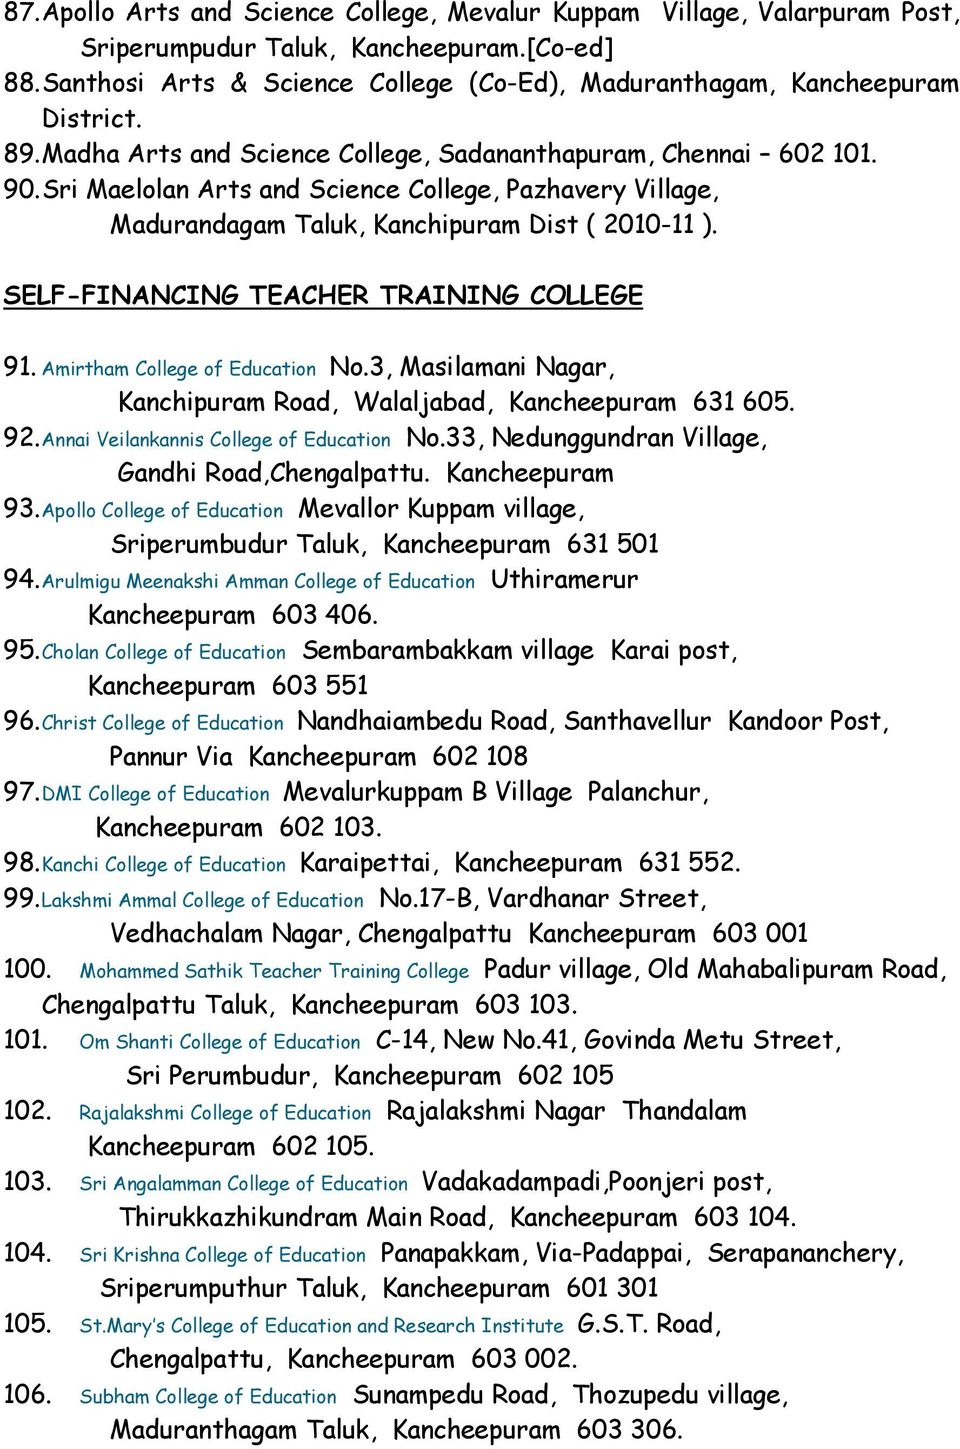 Sri Maelolan Arts and Science College, Pazhavery Village, Madurandagam Taluk, Kanchipuram Dist ( 2010-11 ). SELF-FINANCING TEACHER TRAINING COLLEGE 91. Amirtham College of Education No.